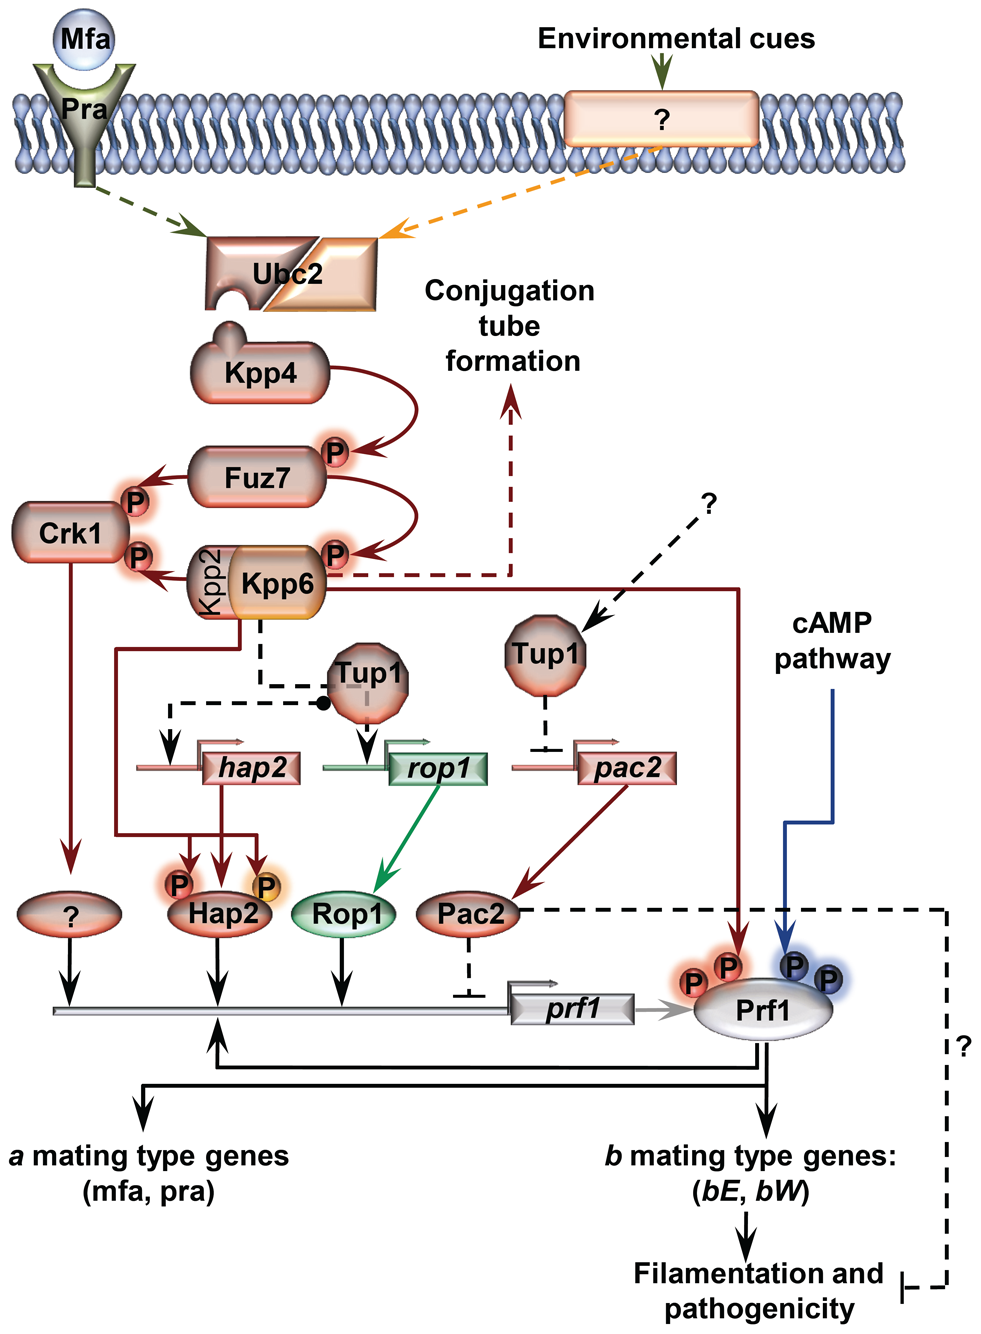 Proposed model for the roles of Tup1 in the control of mating-type genes.